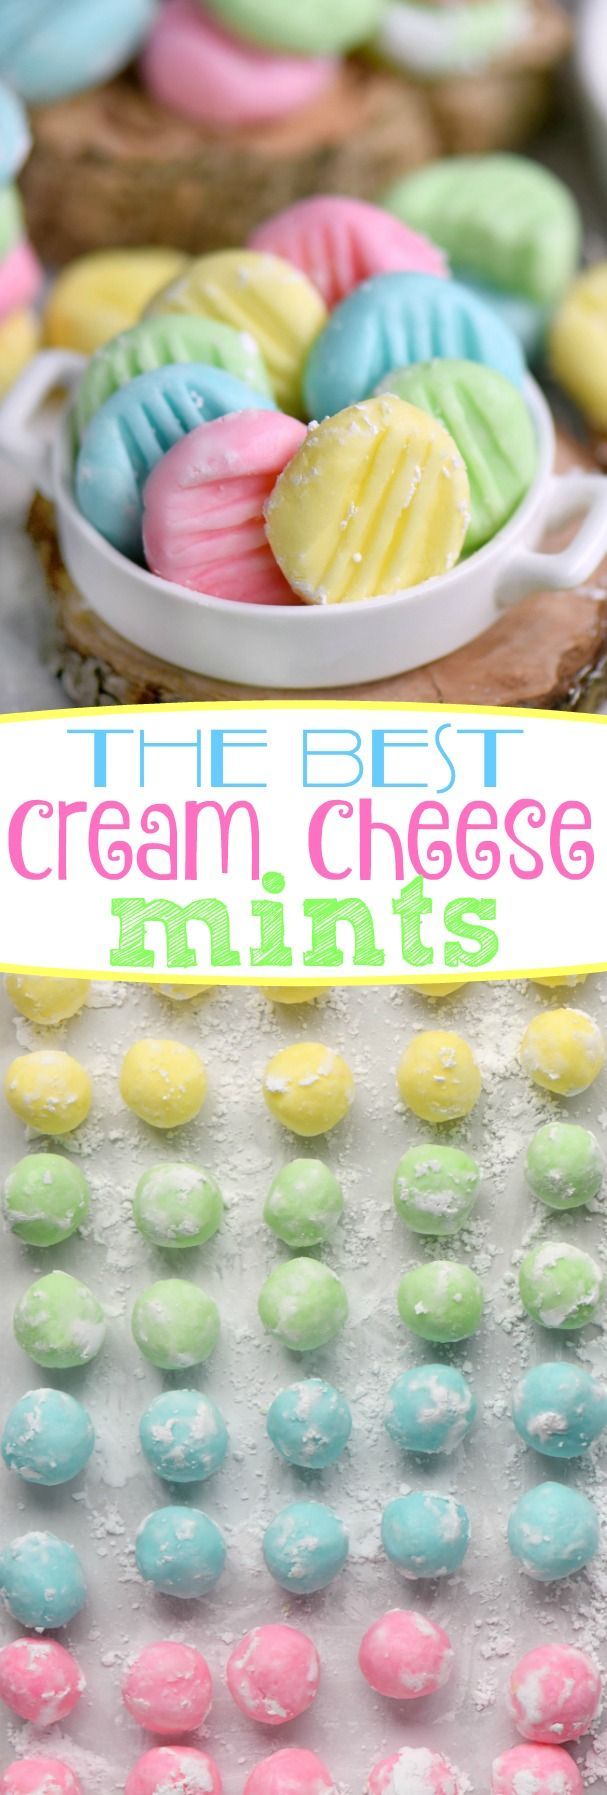 The BEST Cream Cheese Mints you'll ever try! This incredibly easy recipe yields the most delicious, luscious, melt-in-your-mouth cream cheese mints around! Make them in any color you like! Perfect for Easter, baby showers, weddings, and more! // Mom On Timeout